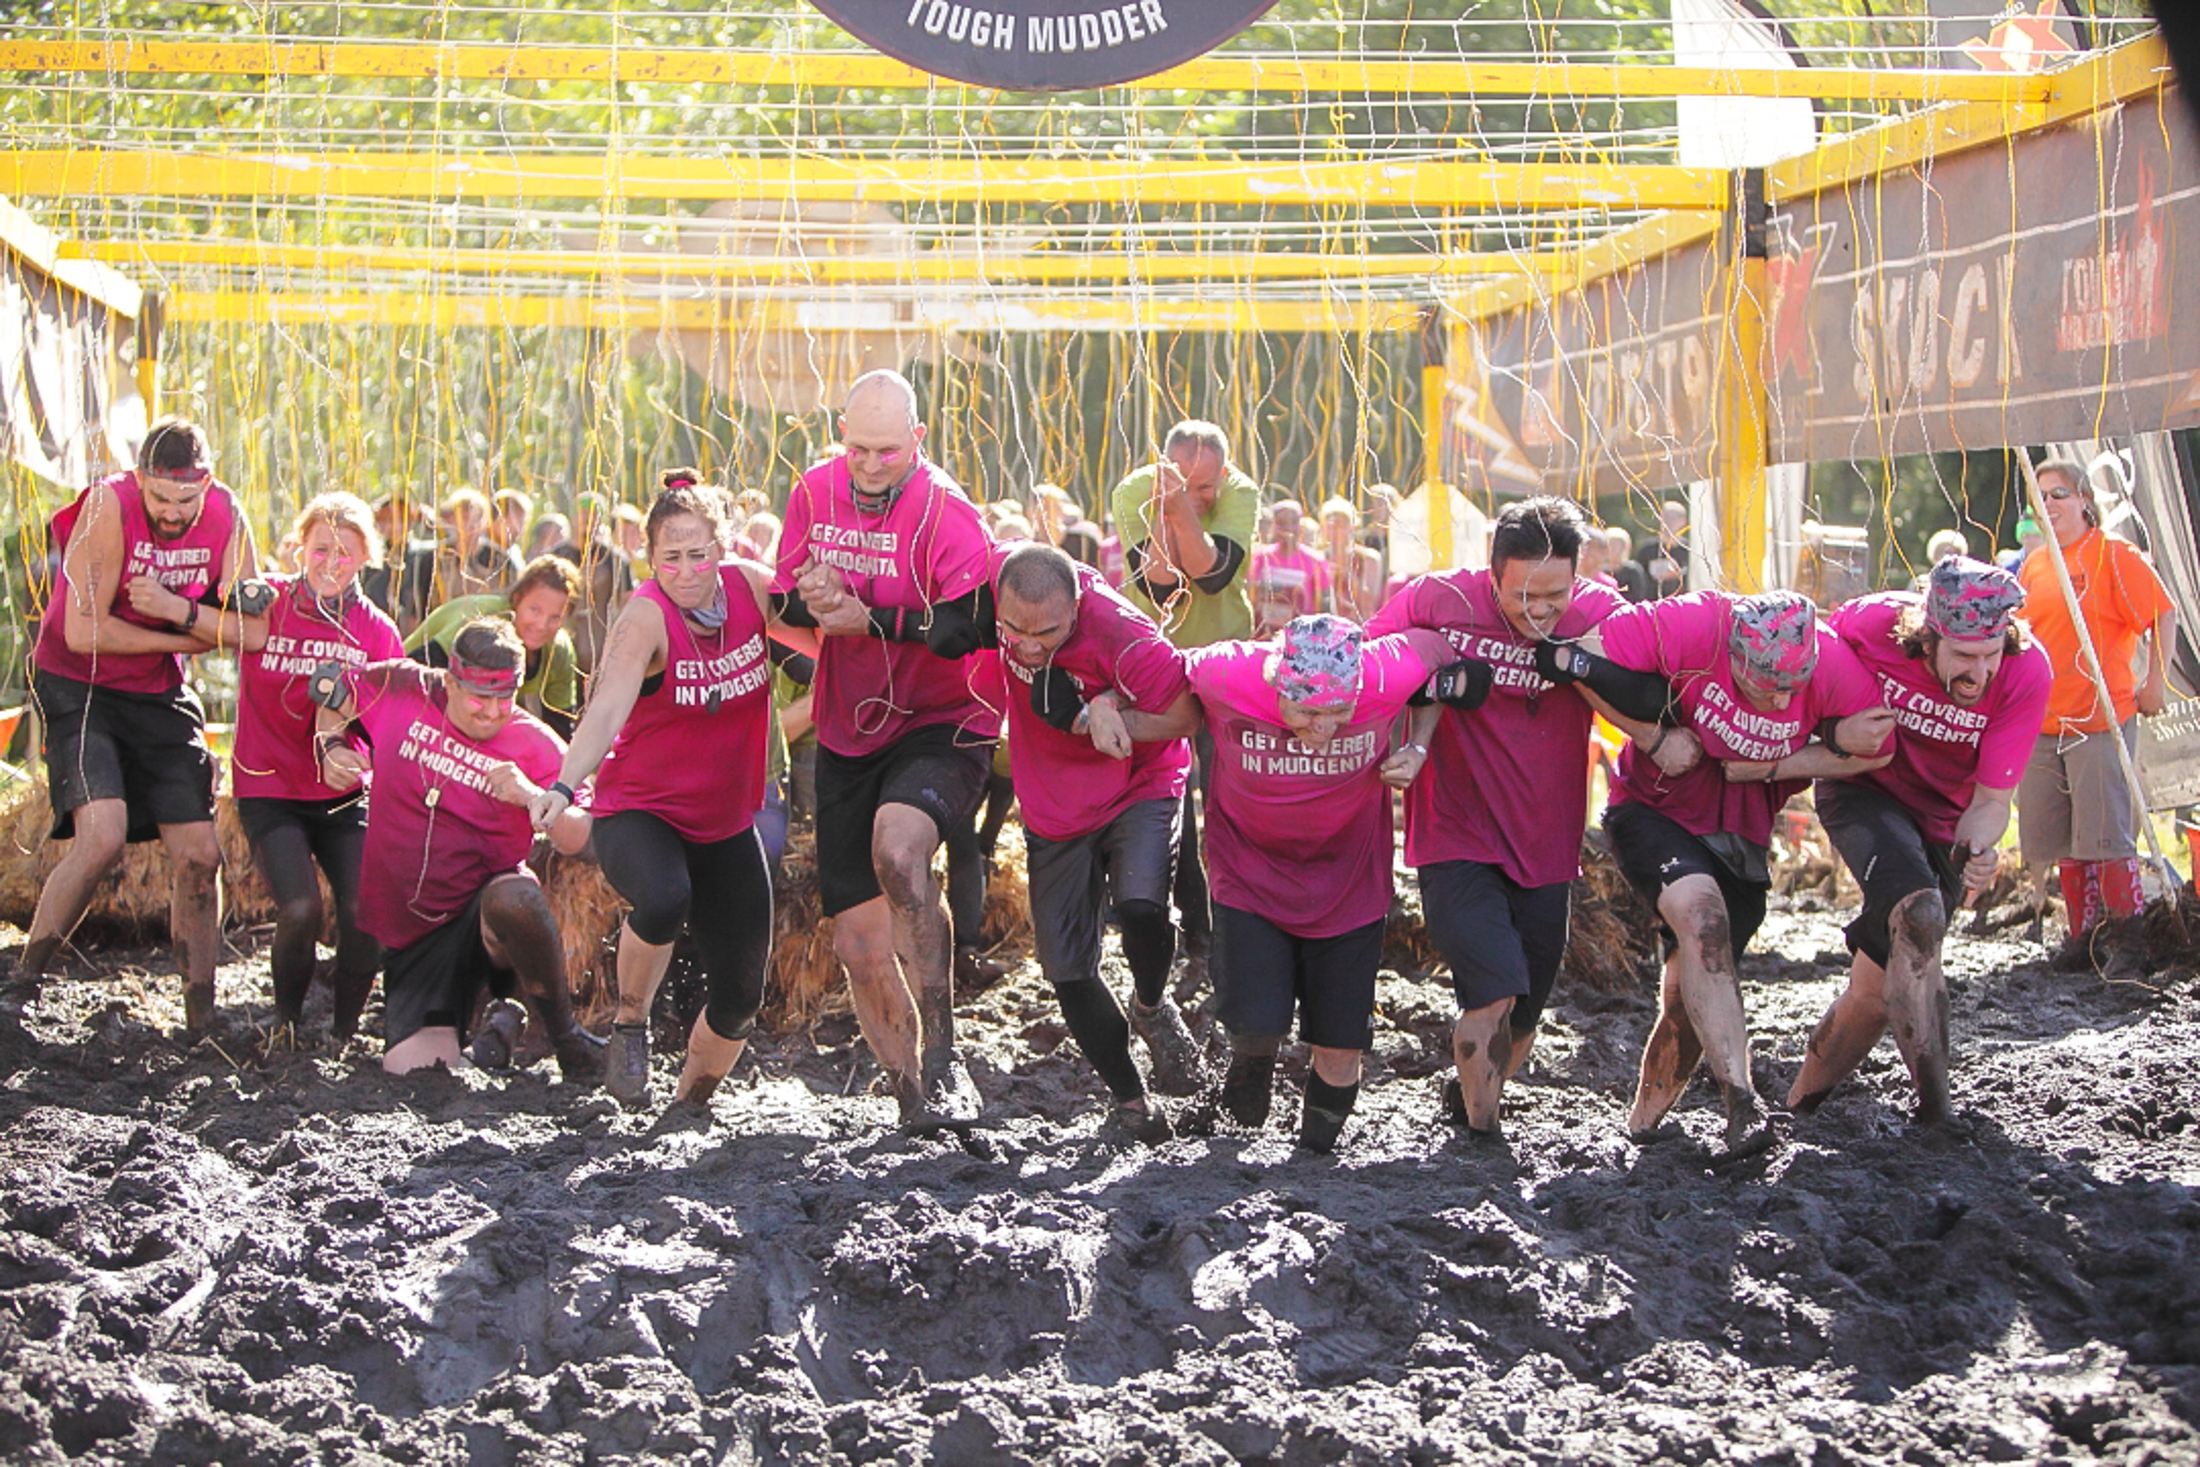 49_T-Mobile_2014-09-27_Tough-Mudder.jpg